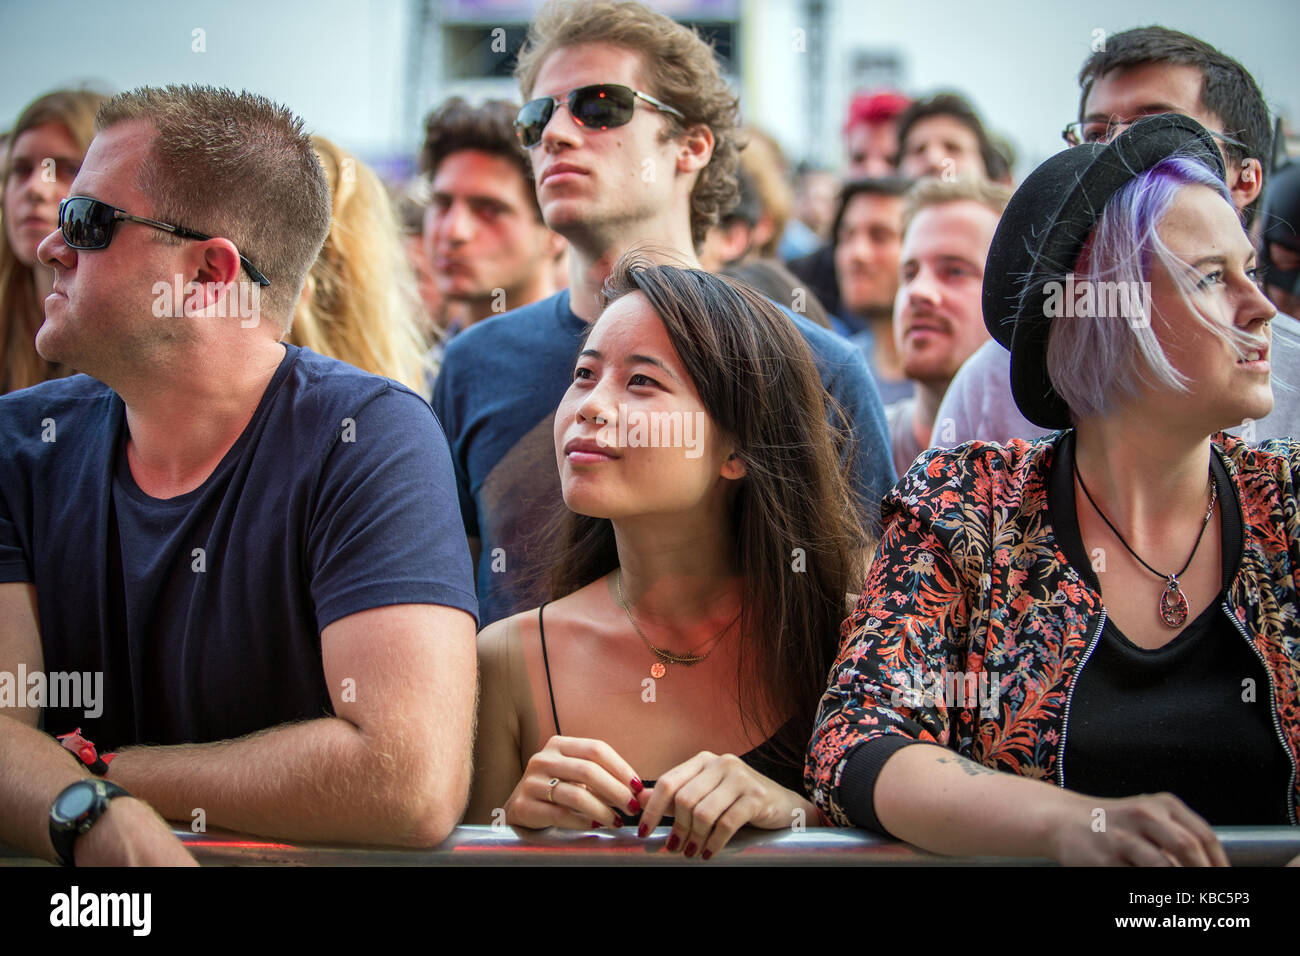 Festival goers and music fans attend a concert with the band My Morning Jacket who performs at the music festival - Stock Image